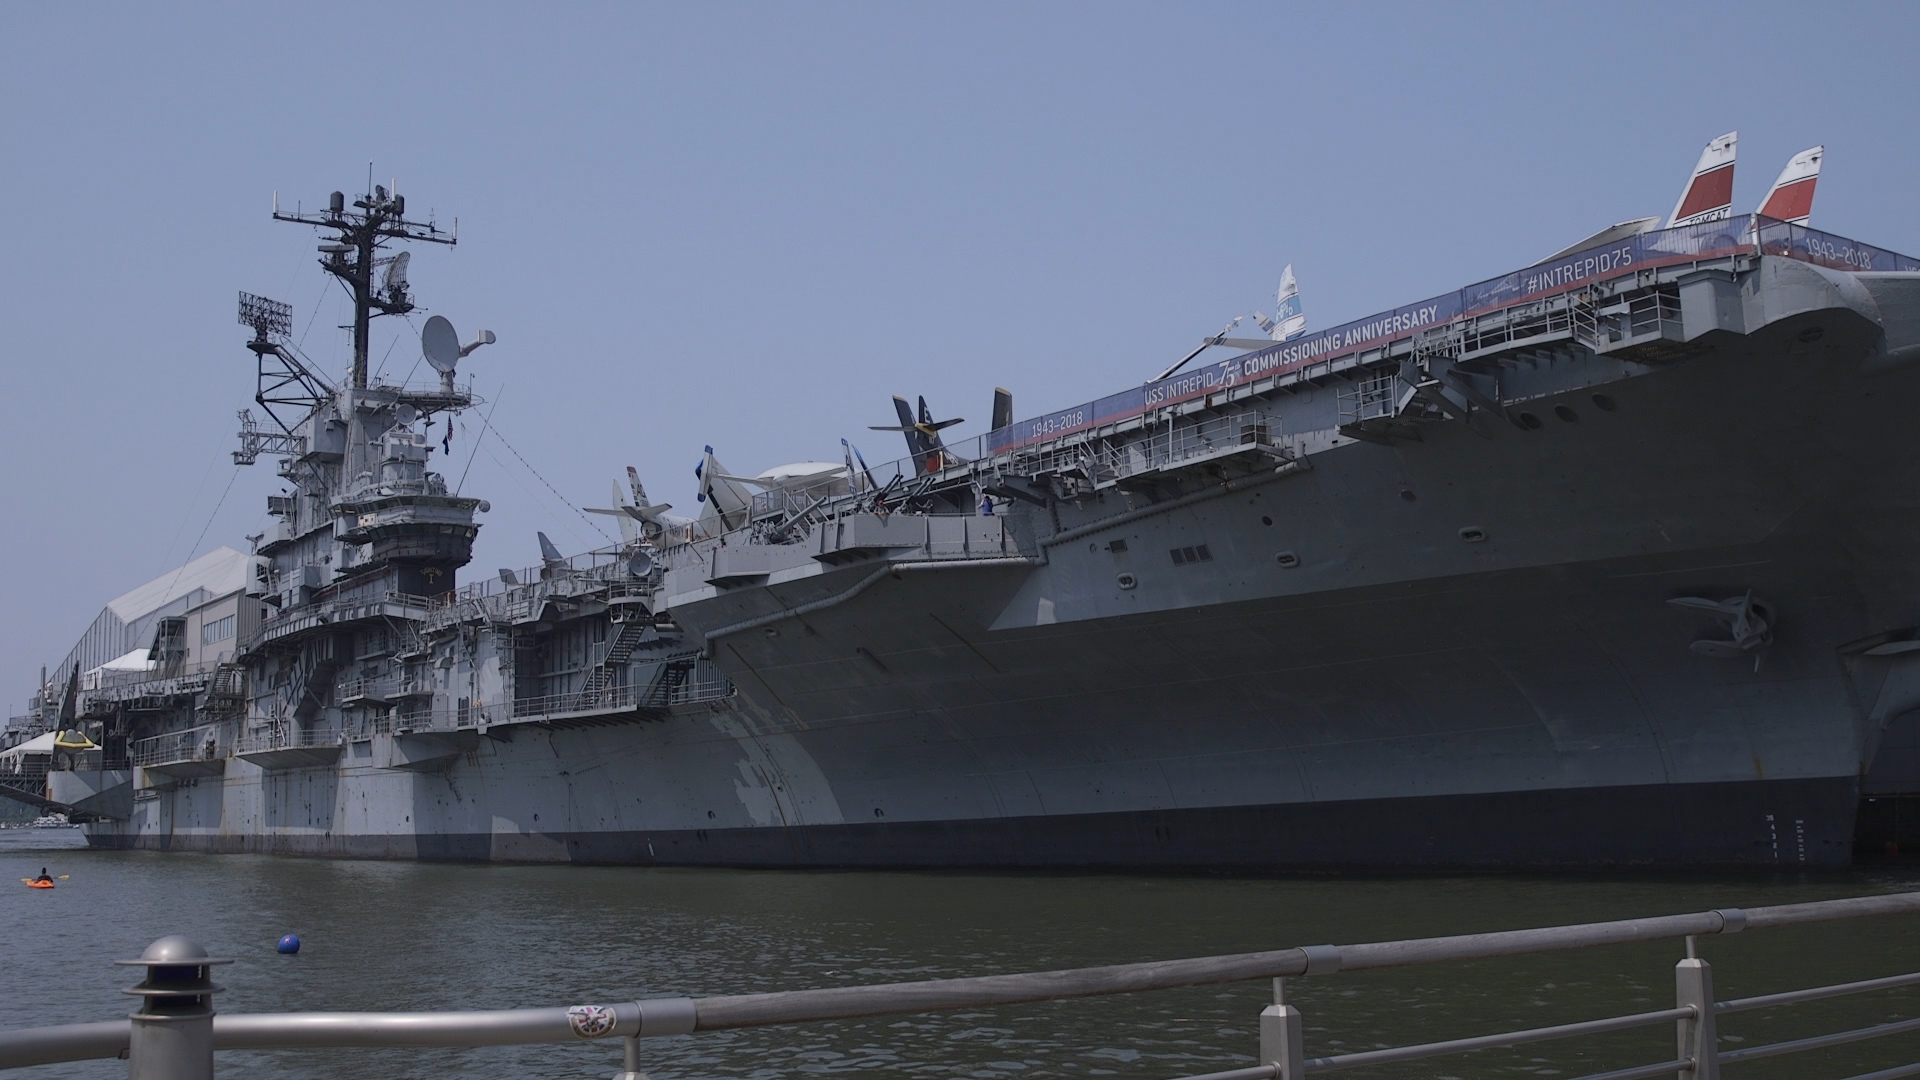 The Intrepid is docked off the West Side on Manhattan during its 75th anniversary.